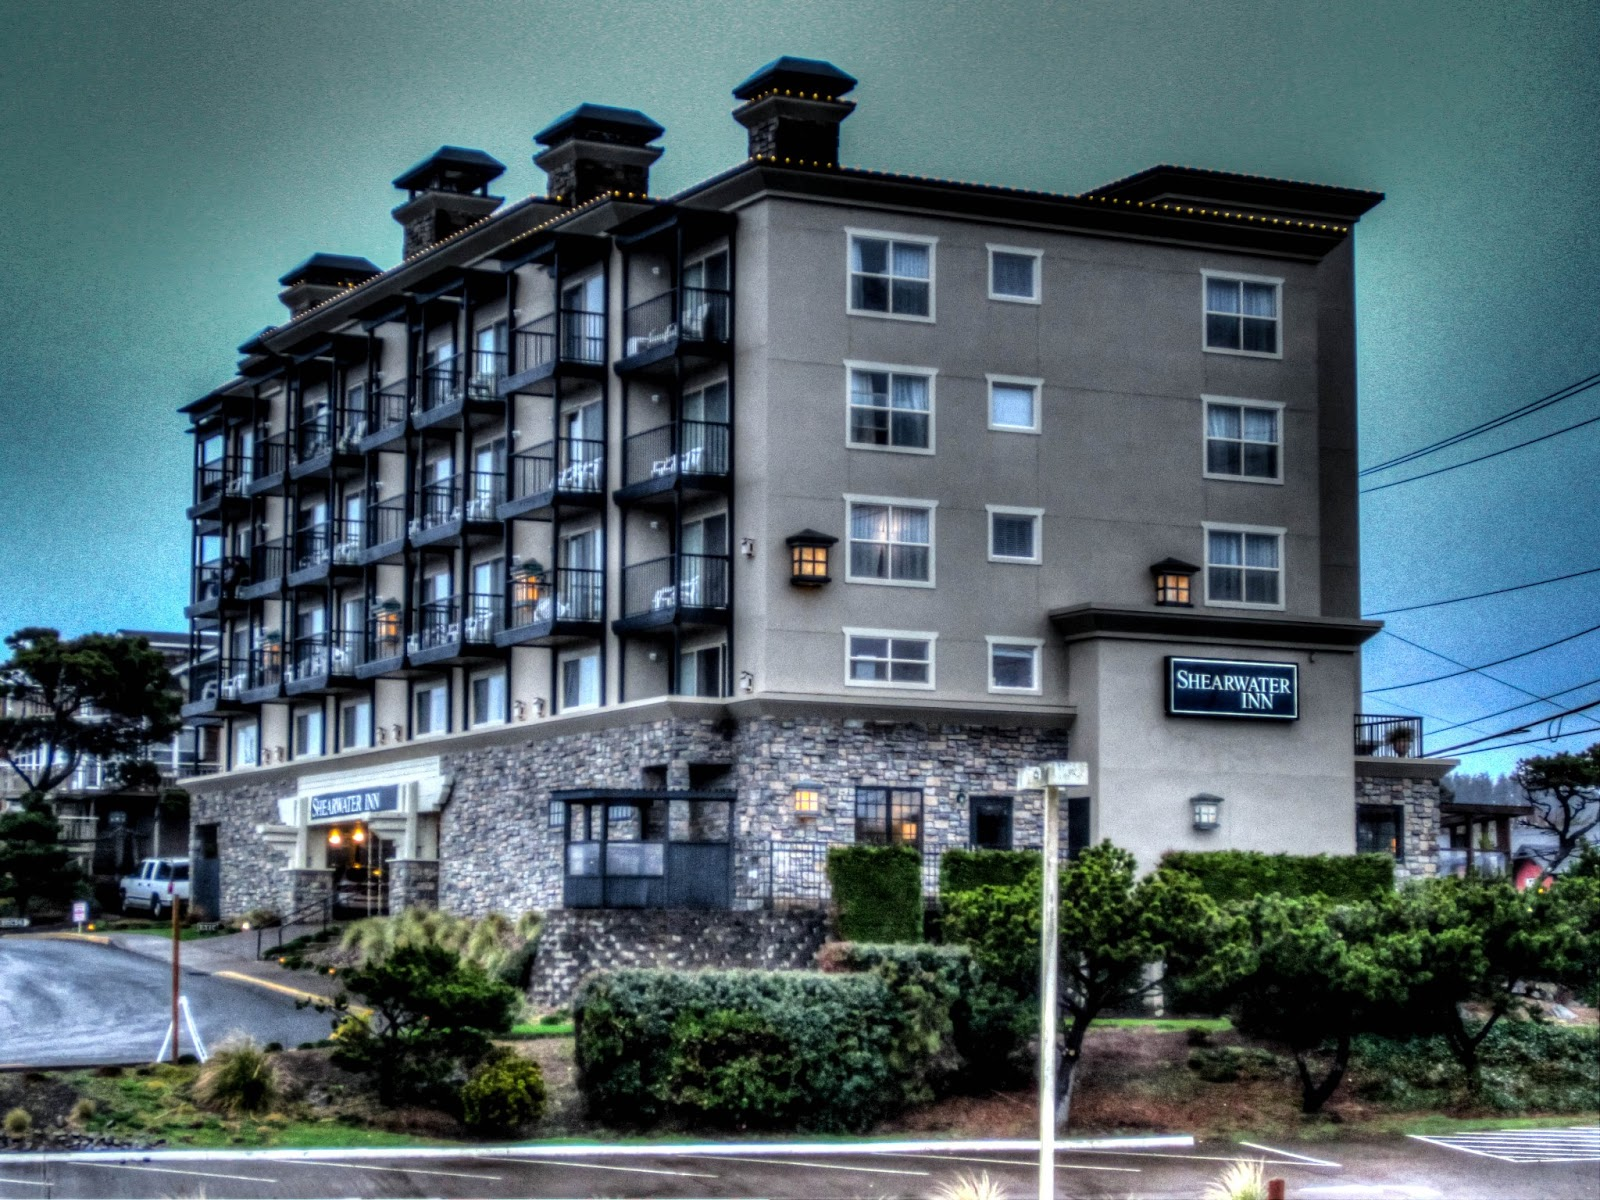 en sphc city oregon hei wid independent spnd hotel pfclc hotels lincoln exterior us hoteldetail